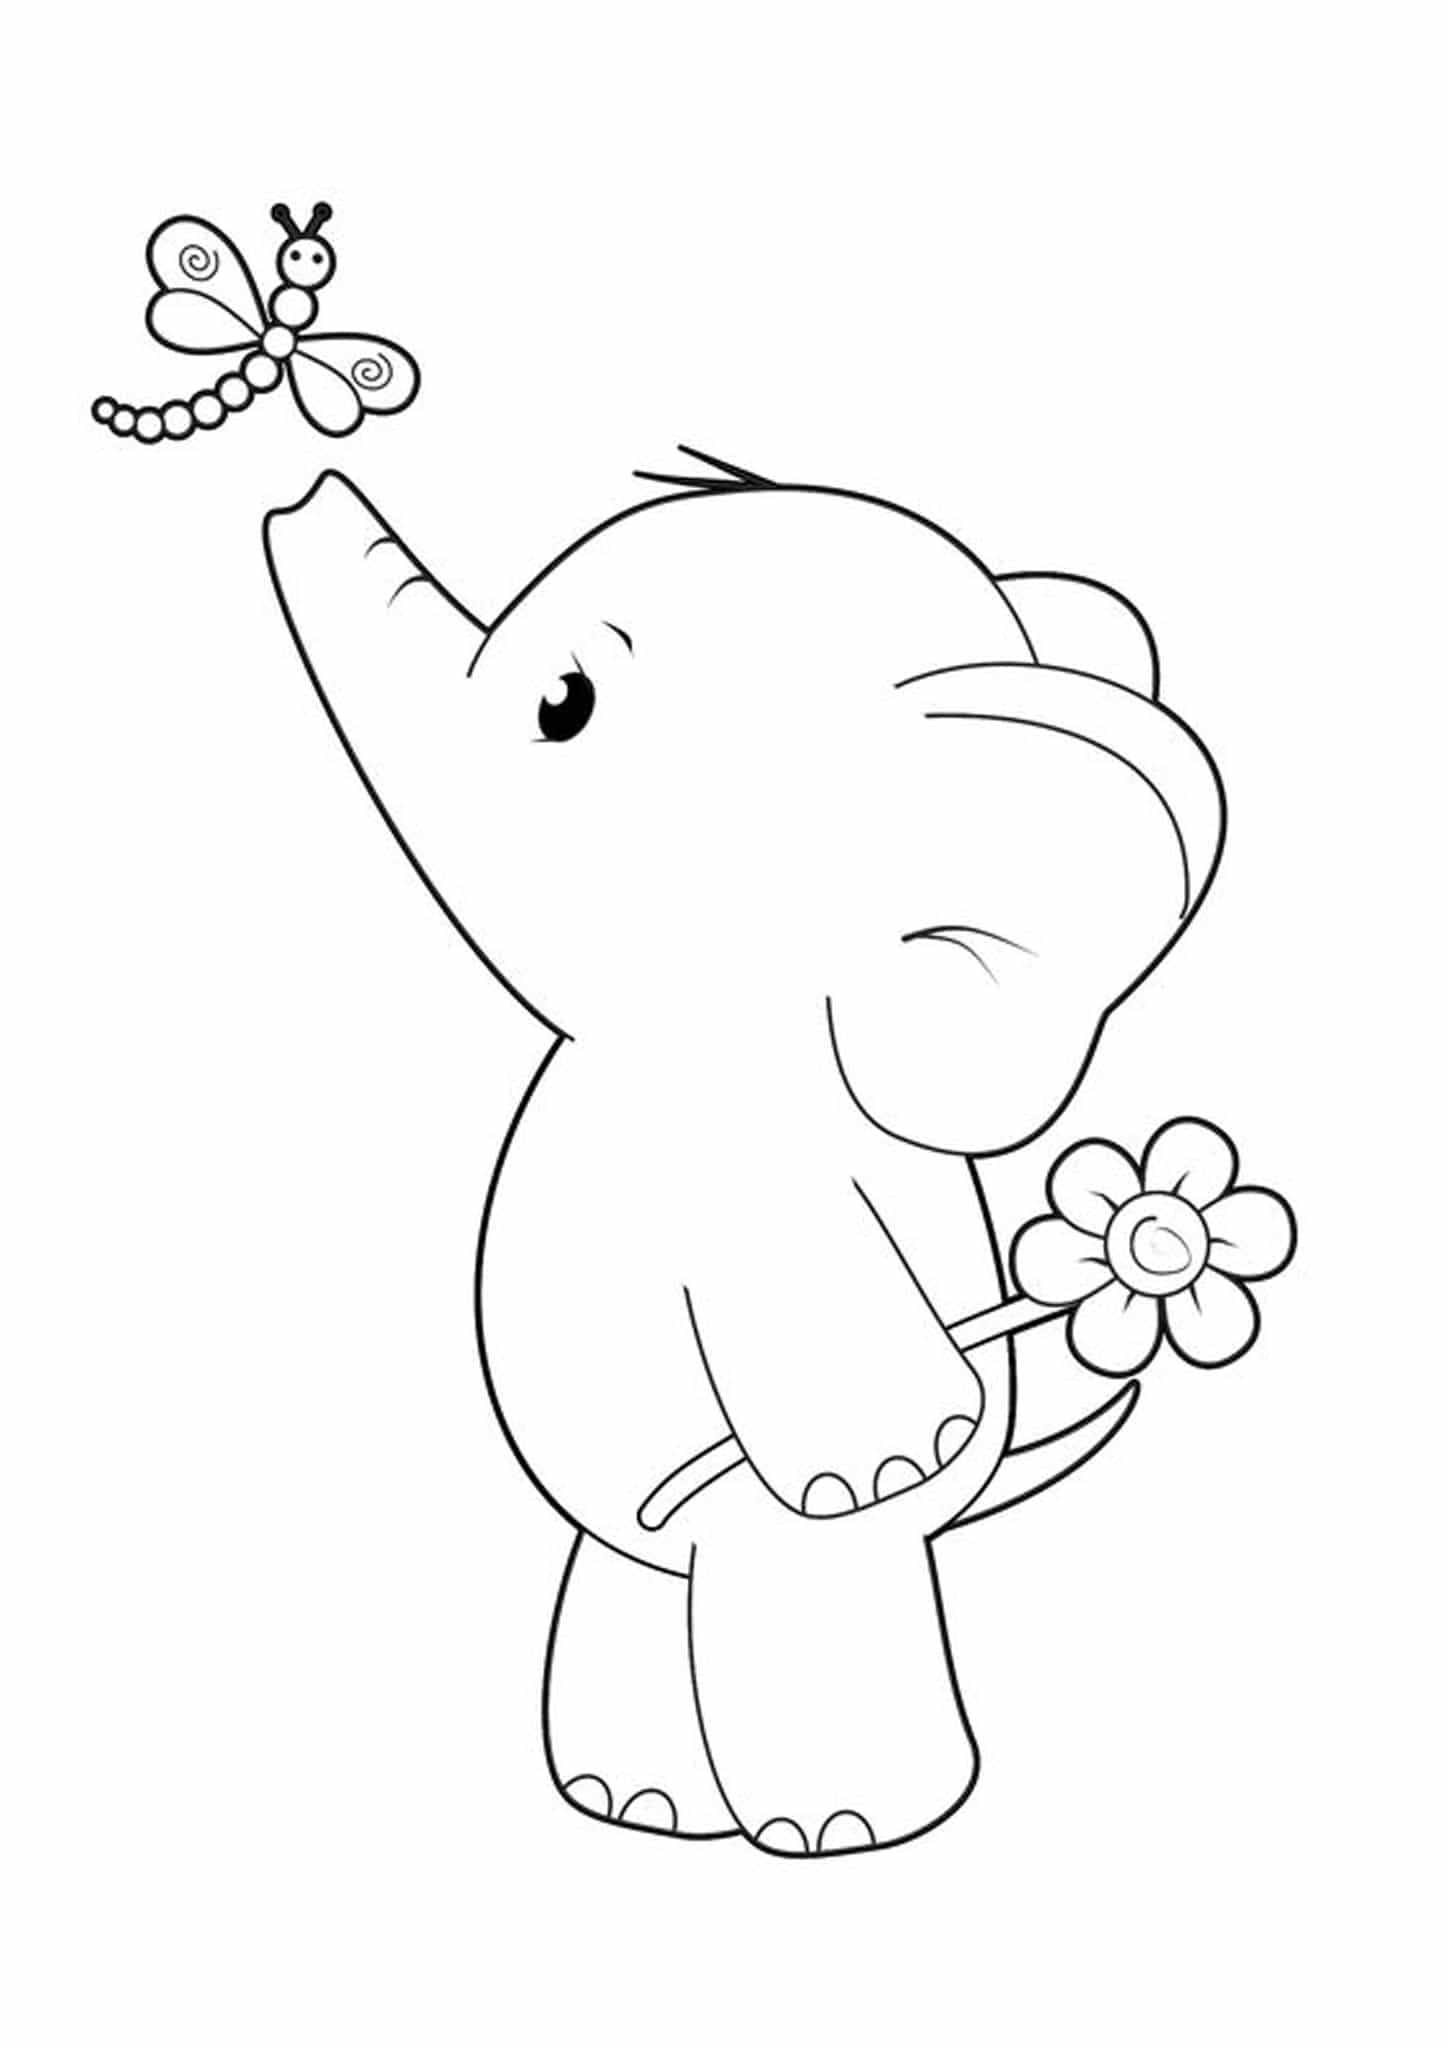 - Free & Easy To Print Elephant Coloring Pages - Tulamama